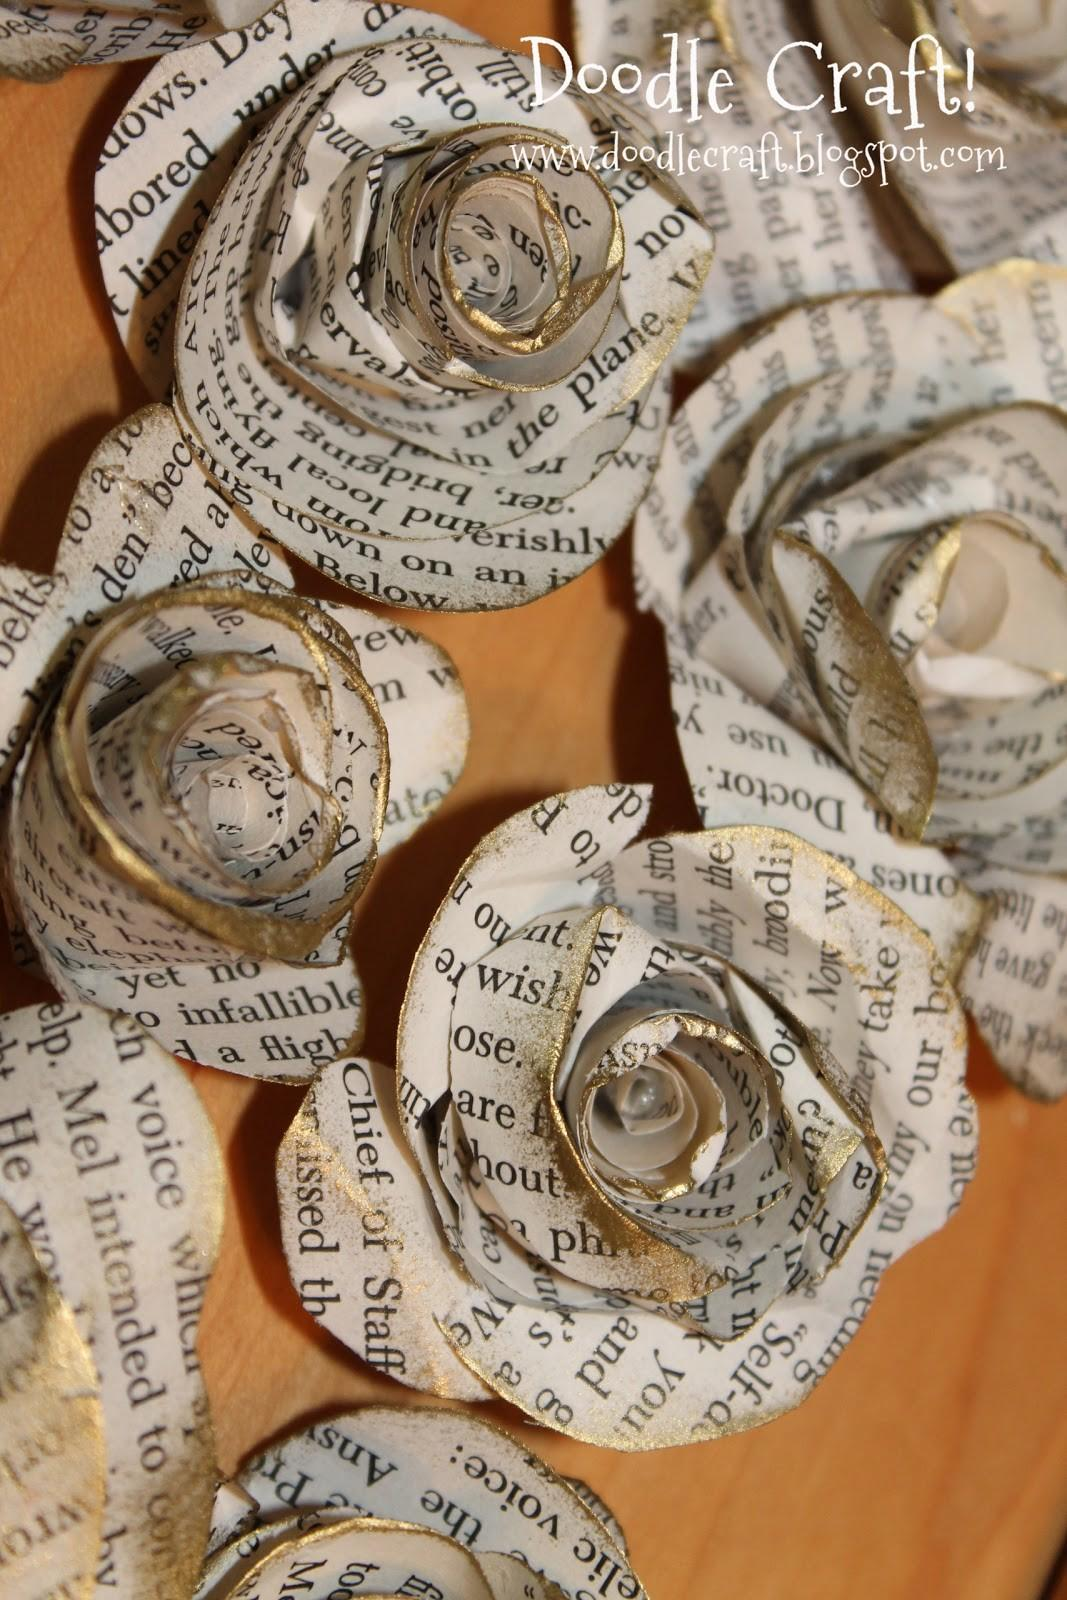 Doodlecraft Upcycled Book Rosettes